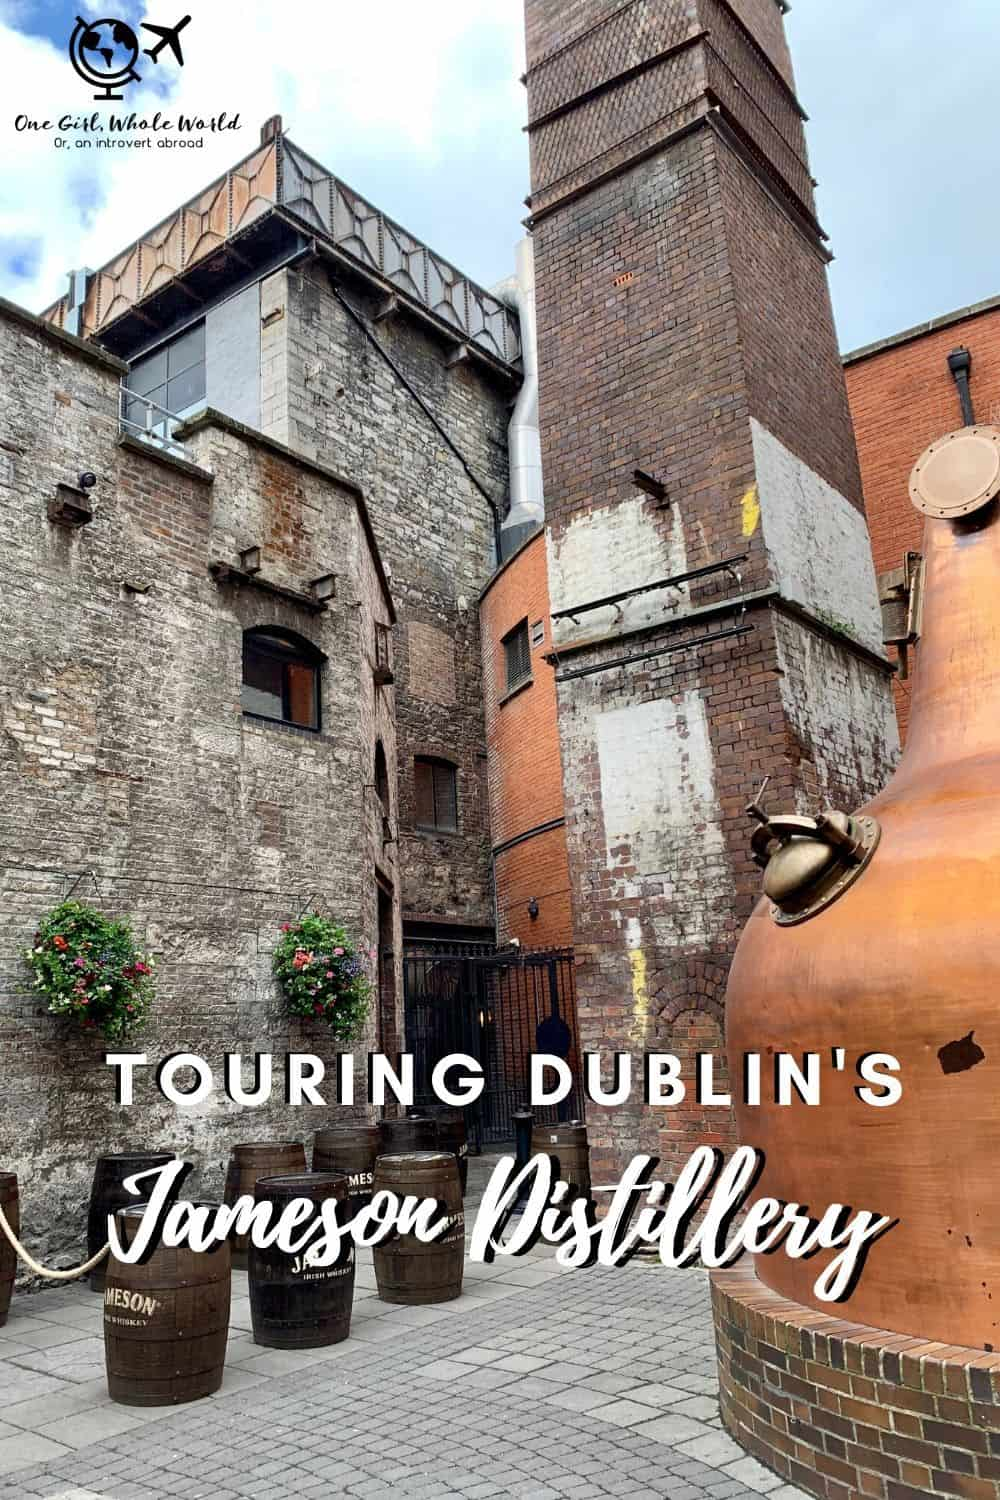 What It's Like Touring Dublin's Jameson Distillery | Many people will tell you that a Jameson tour is a must on your Dublin visit. I share what my experience was like with the tour, the bar, the tour guide, and more...what to expect if you visit Jameson. Things to do in Dublin, Dublin itinerary ideas, distillery tours in Ireland #jameson #dublin #ireland #distillerytour